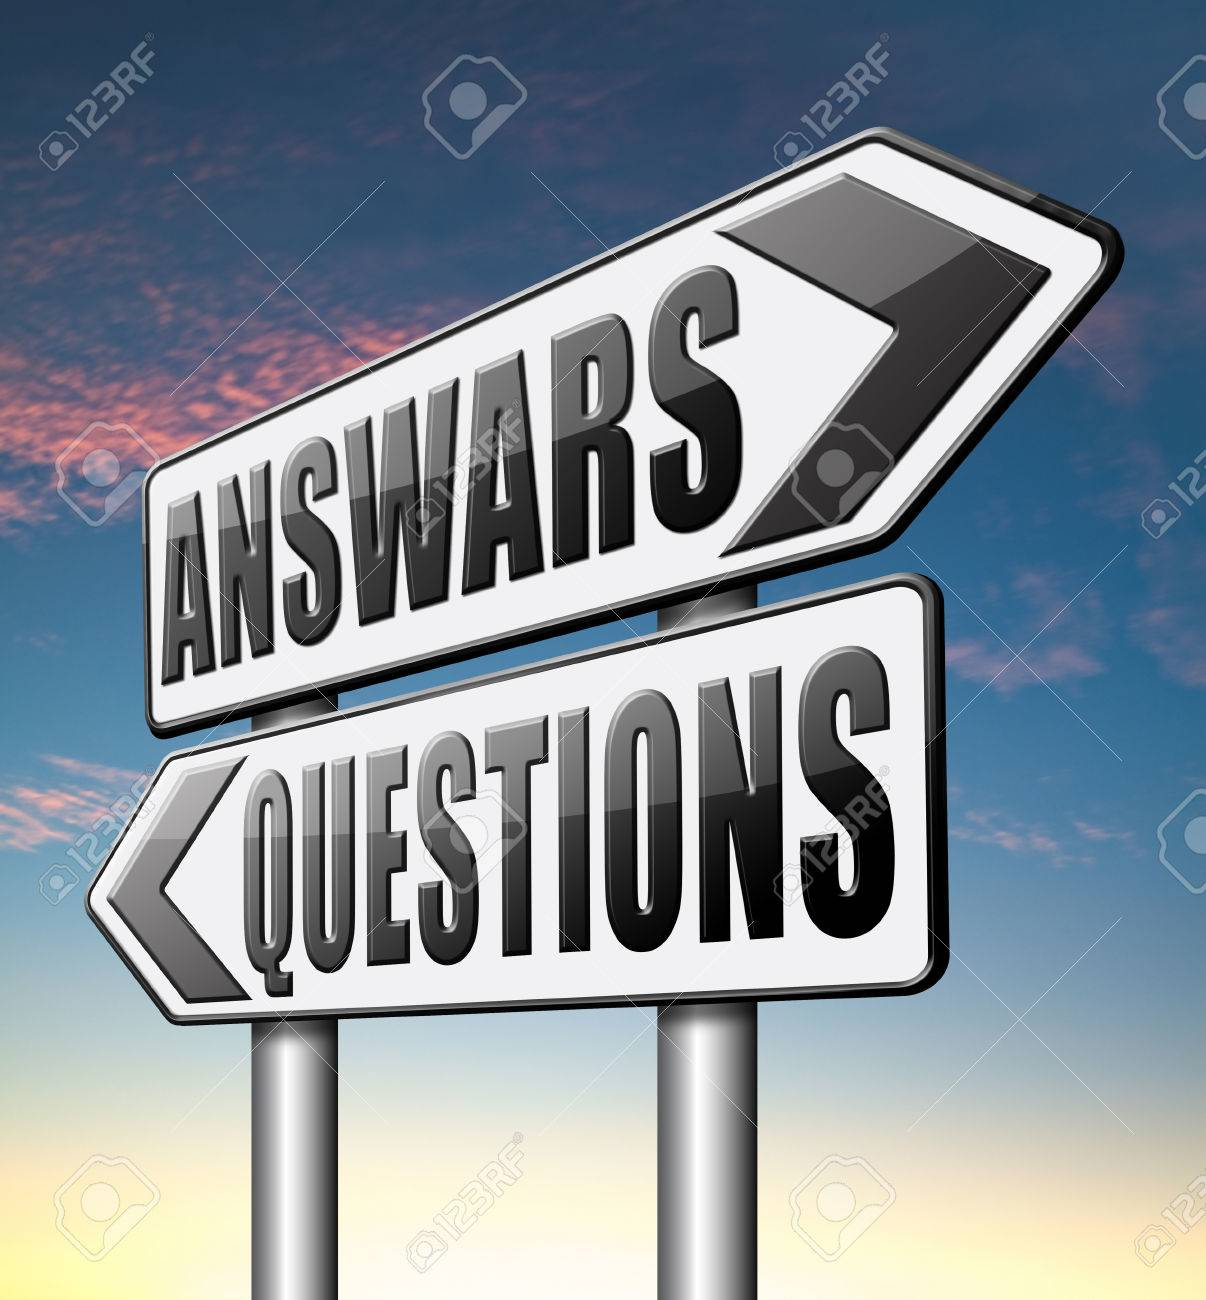 Stock Photo  Question Answer Ask The Right Questions And Get An Answers  Help Or Support Desk Solving Problems And Finding Solutions